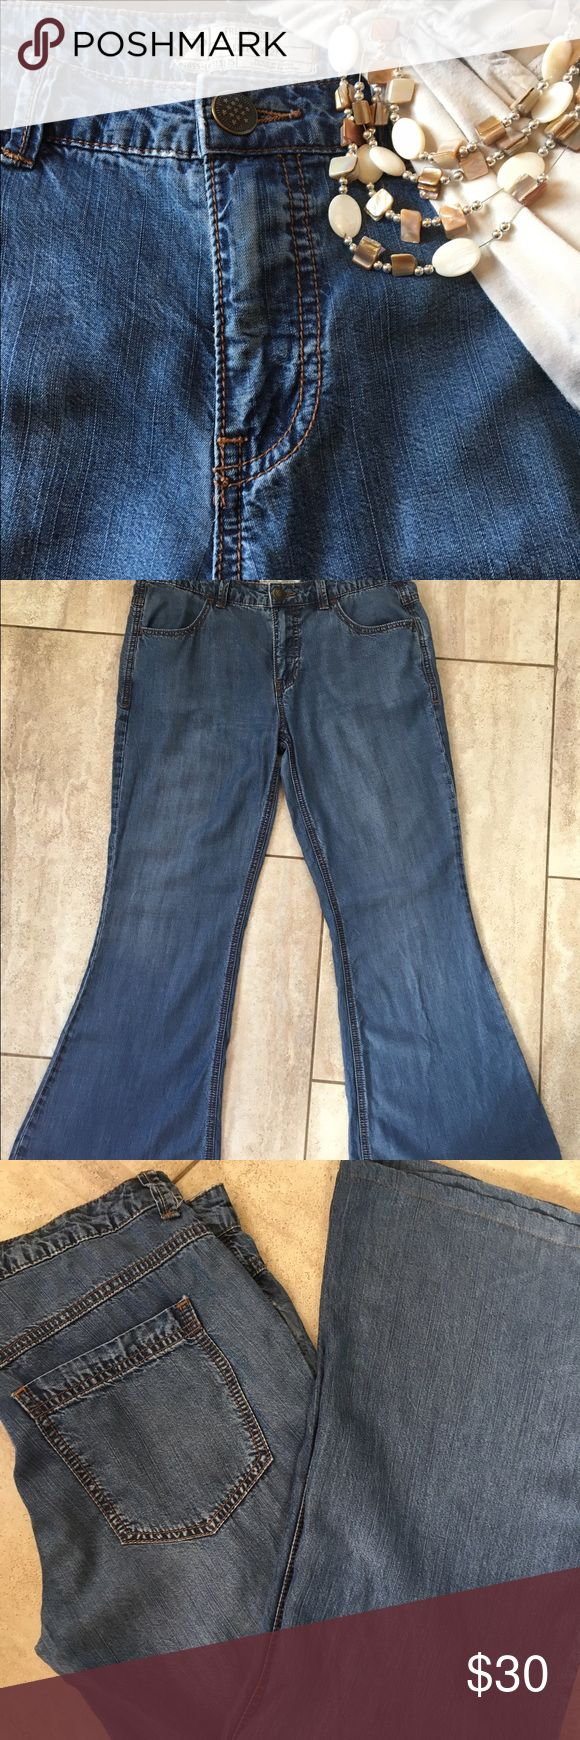 Free people jeans Free People flared jeans in a medium light wash . Very soft ! Free People Jeans Flare & Wide Leg